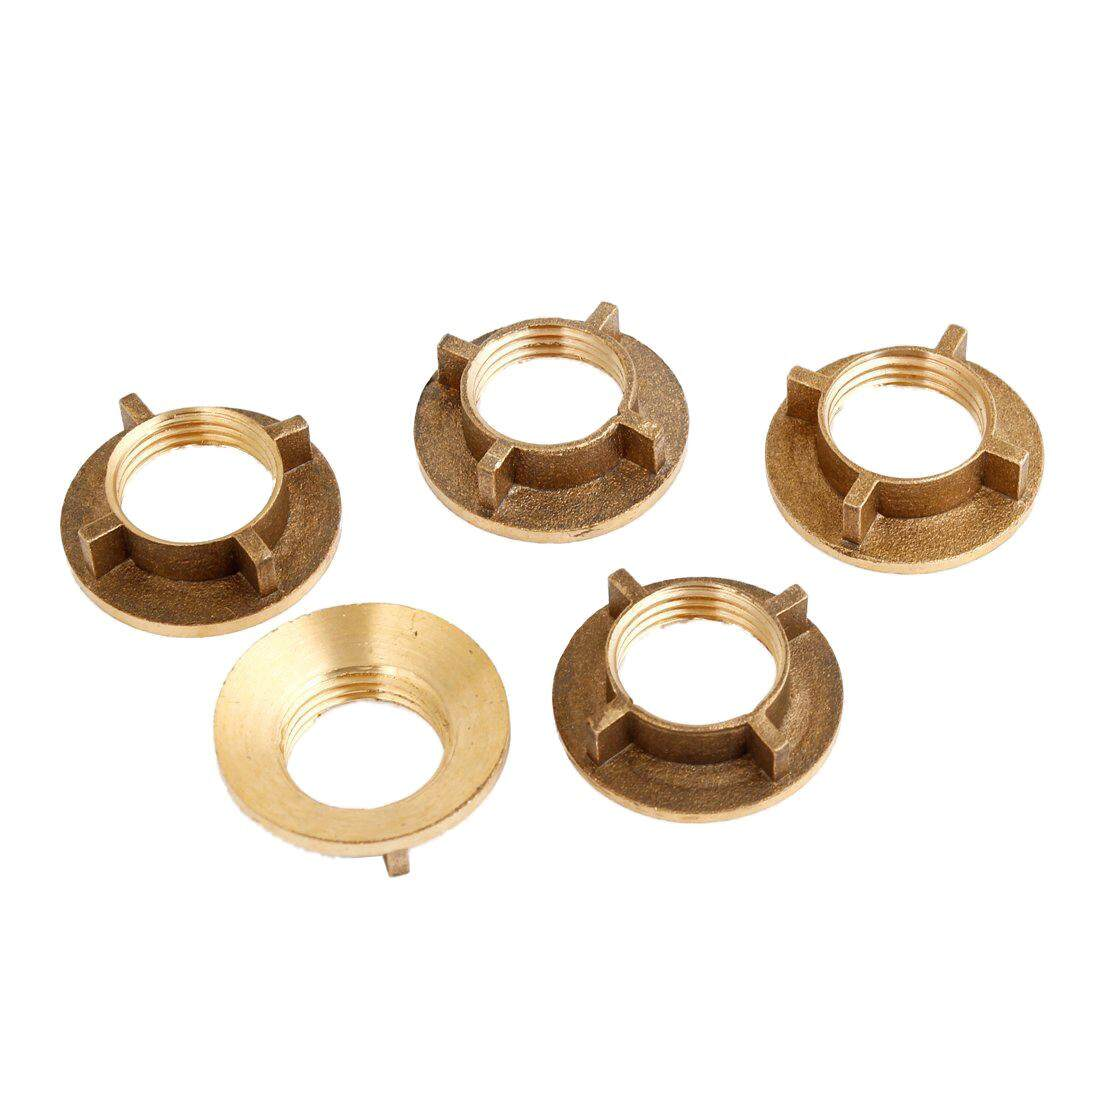 5 Pcs Gold Tone Brass 1/2PT Threaded Household Water Tap Faucet Nuts